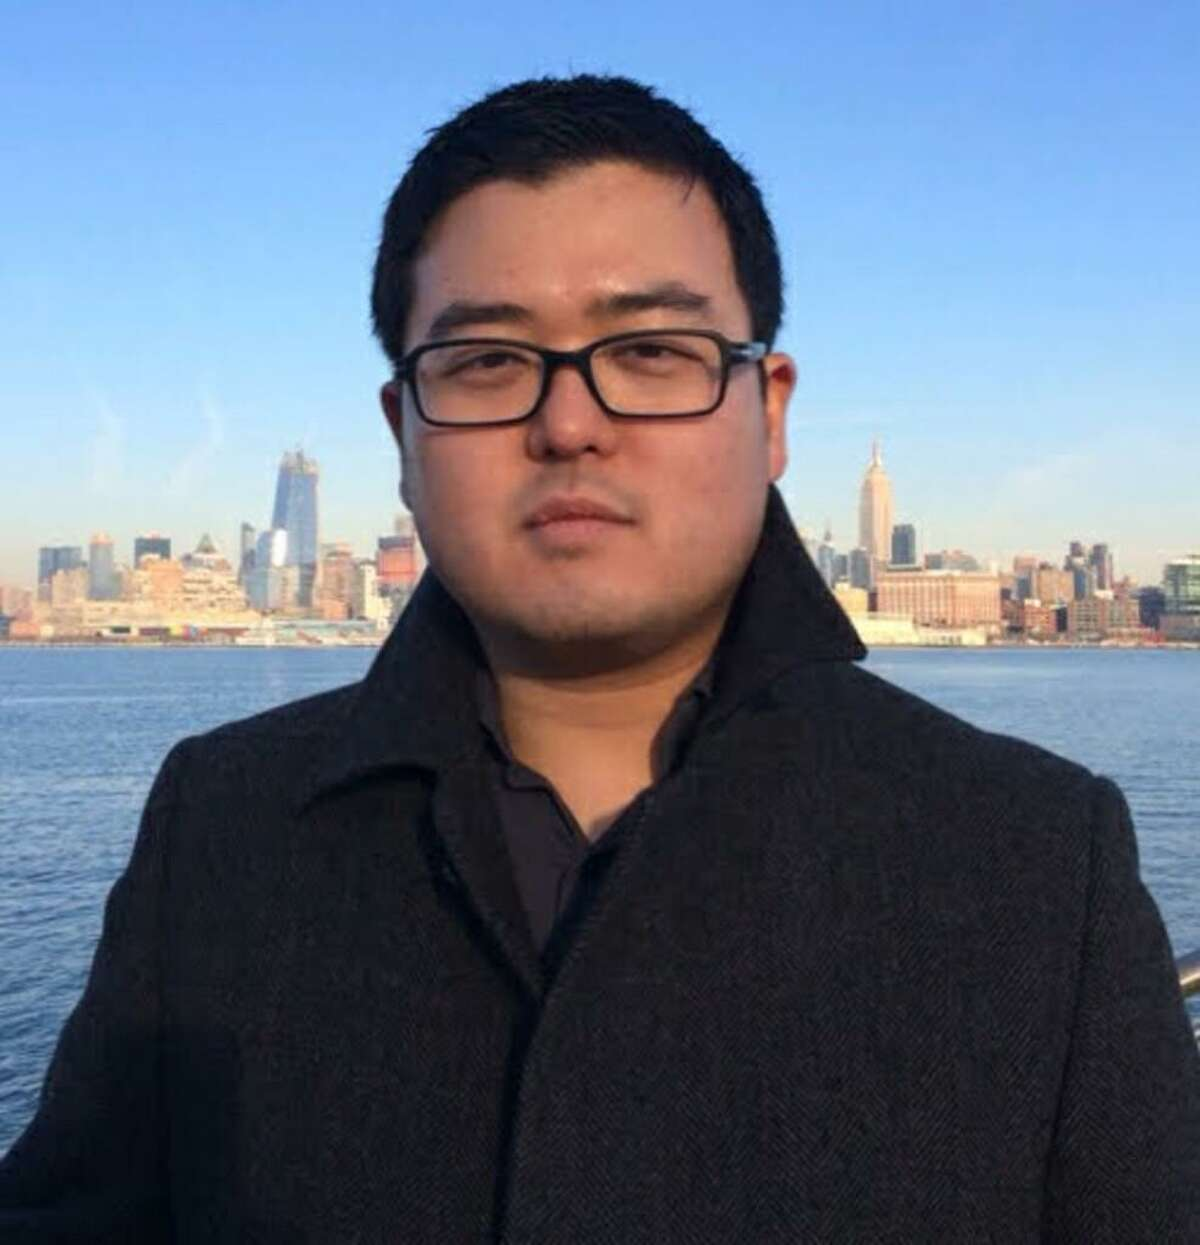 Jason Chung, B.C.L., LL.B. is executive director of Esports; assistant professor, Pompea College of Business, University of New Haven.